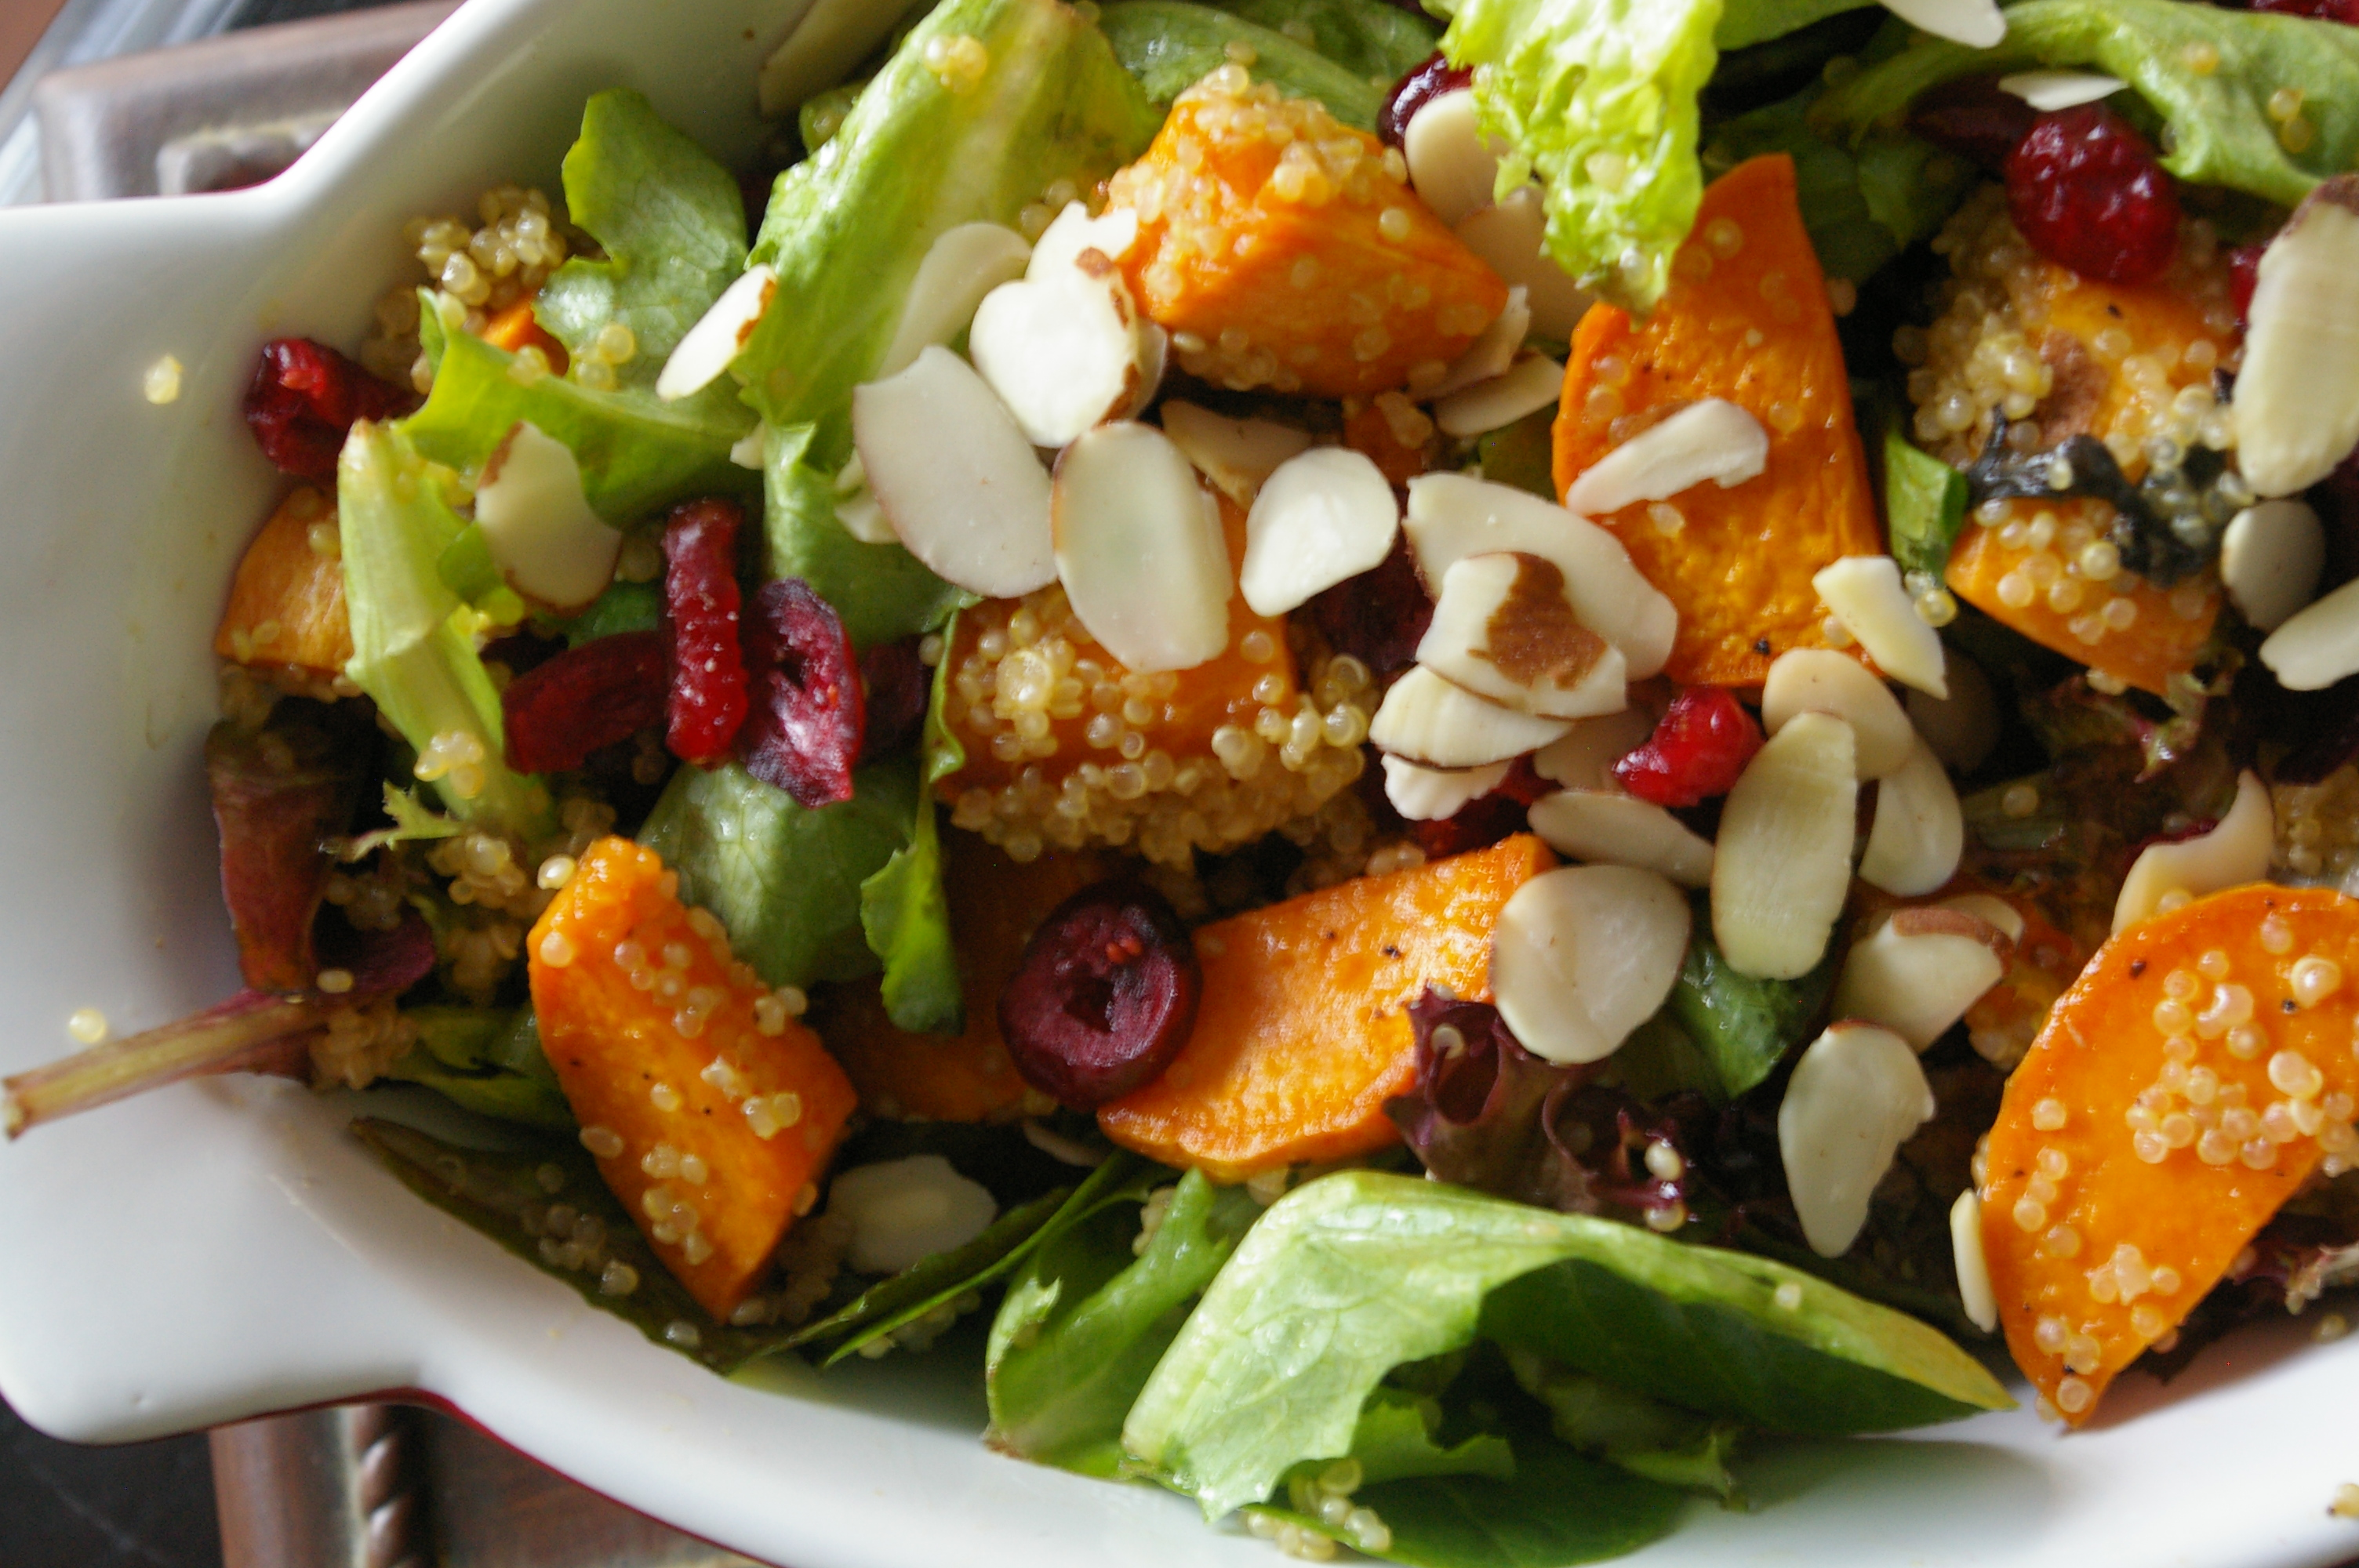 25 delicious winter salad recipes you can recreate at home!